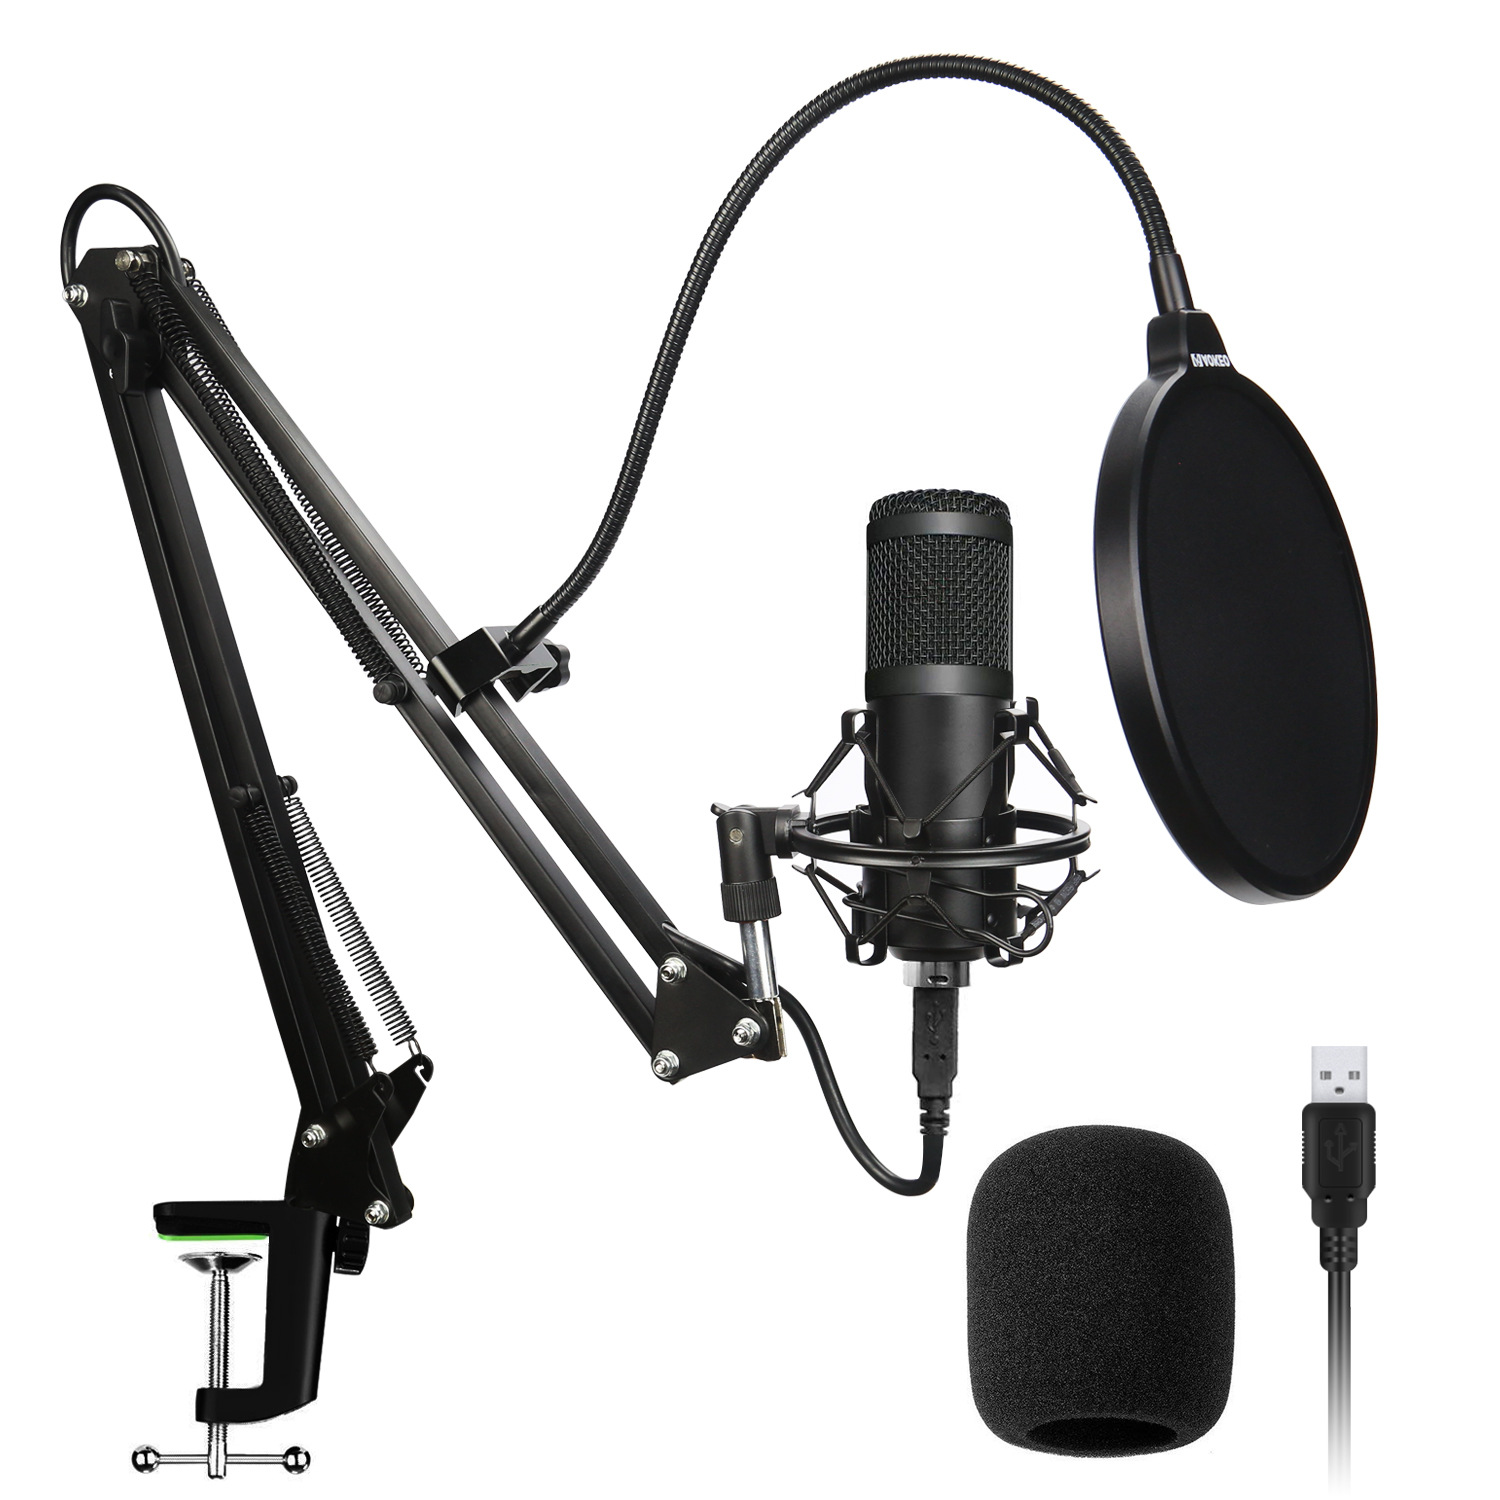 Professional Condenser Audio 3.5mm Wired BM800 Studio Microphone Vocal Recording KTV Karaoke Microphone Mic W/Stand For Computer